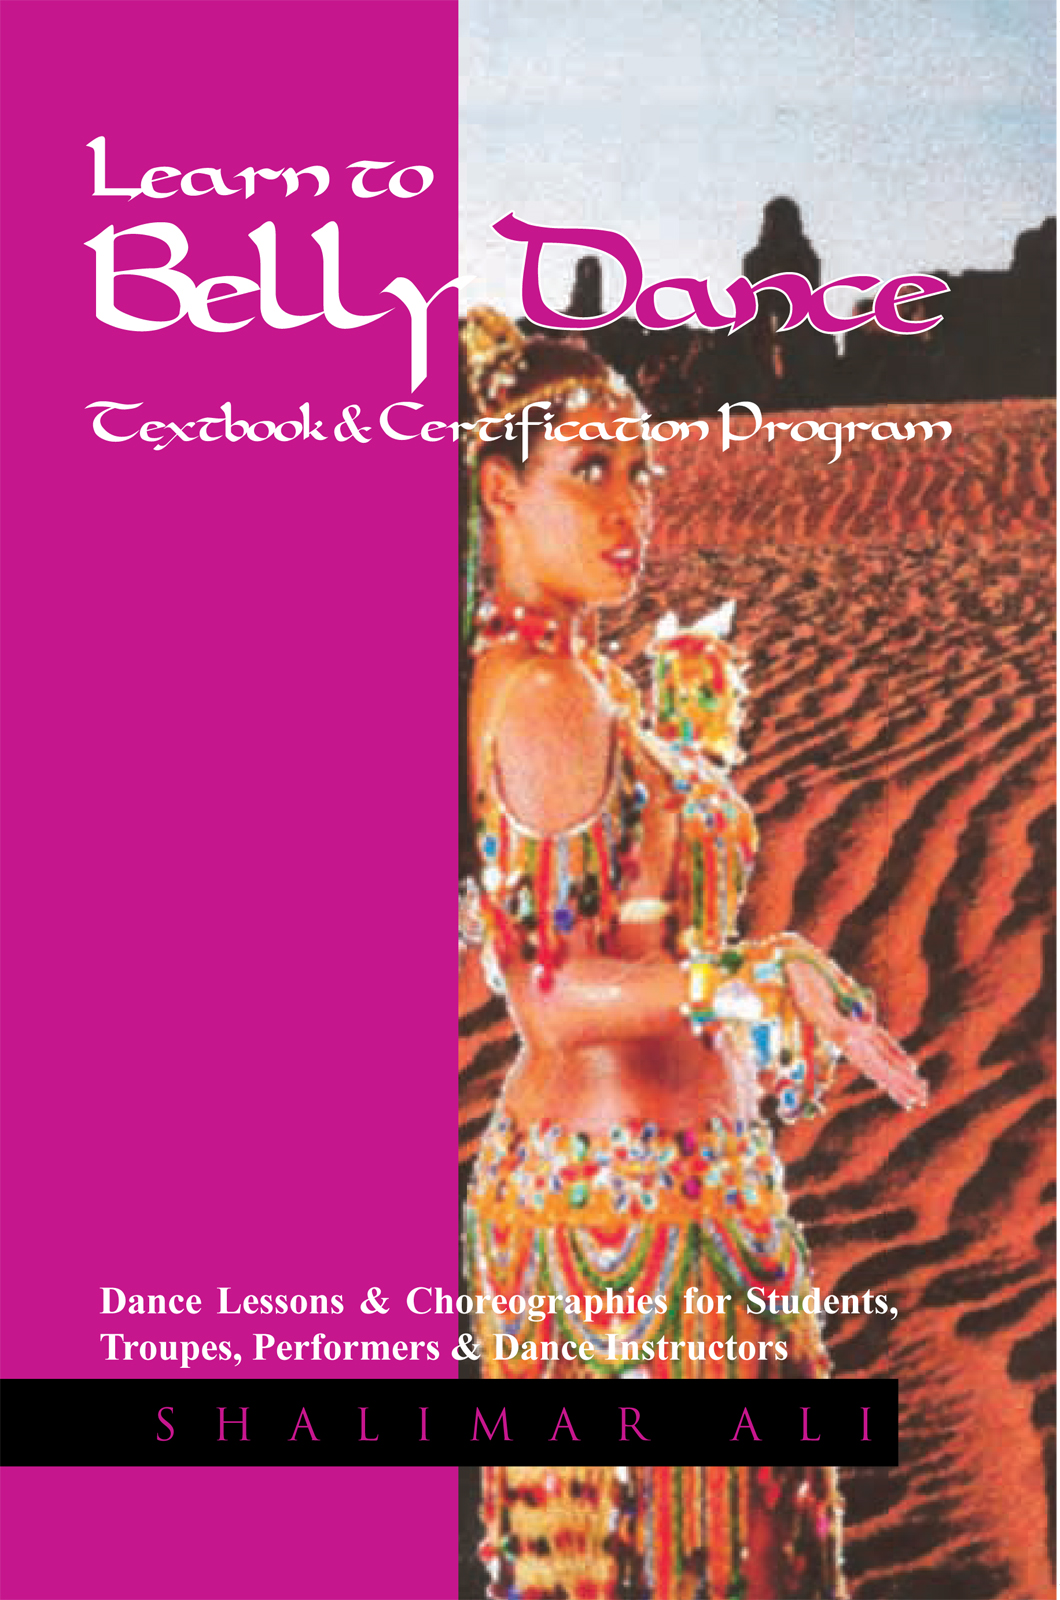 Learn to Belly Dance Textbook & Certification Program